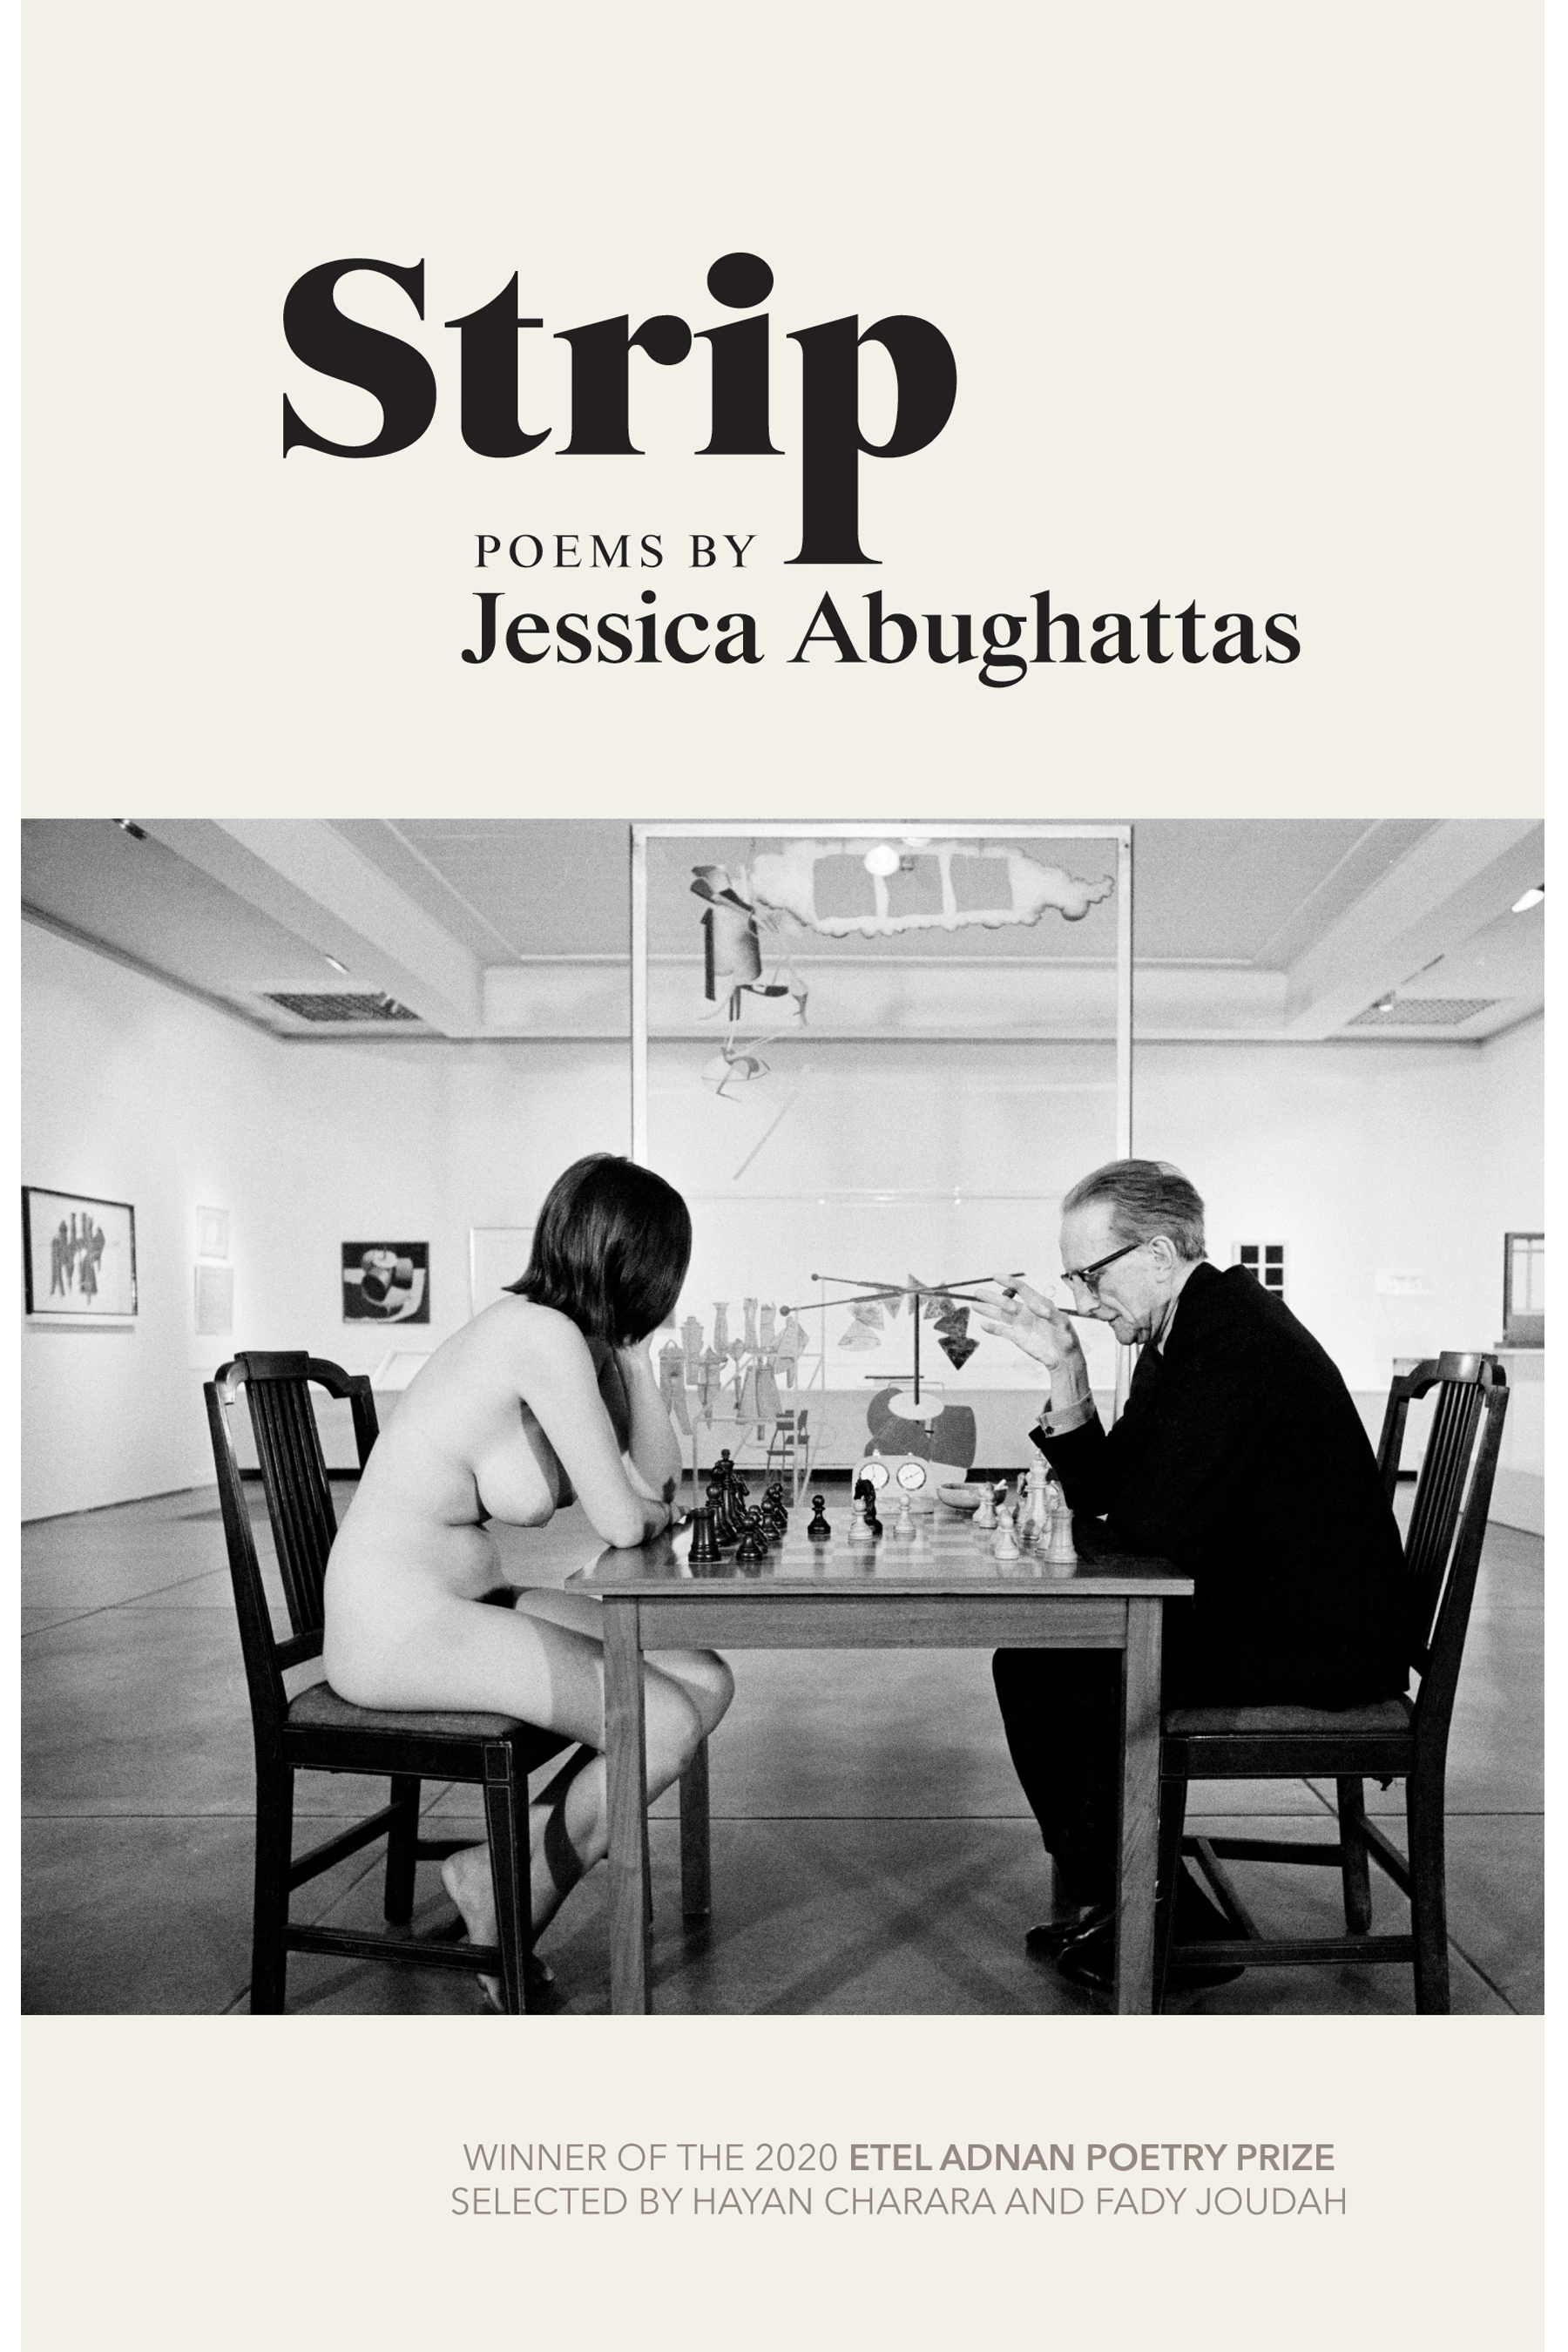 cover image for Strip by Jessica Abughattas